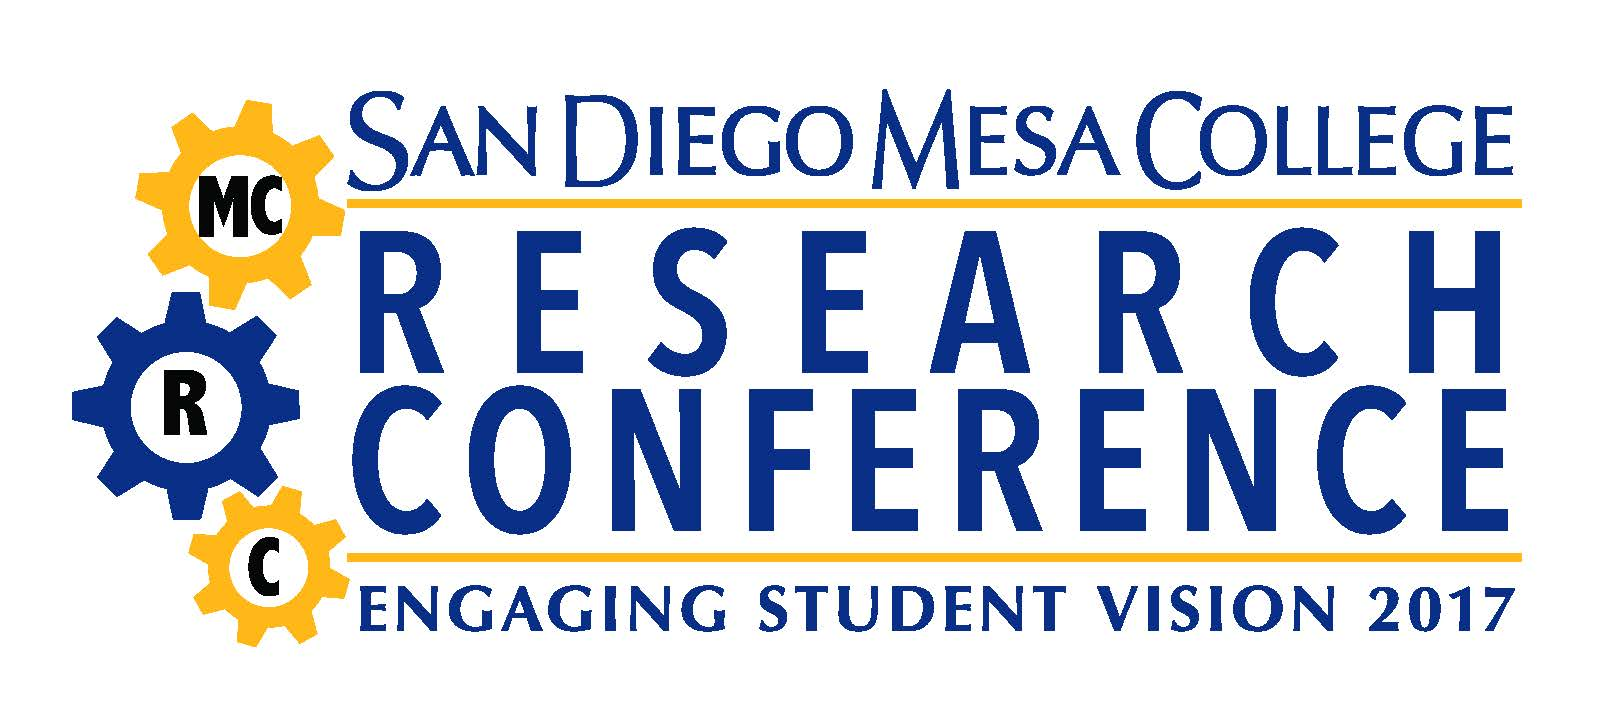 Mesa College Research Conference 2017 - San Diego Mesa College